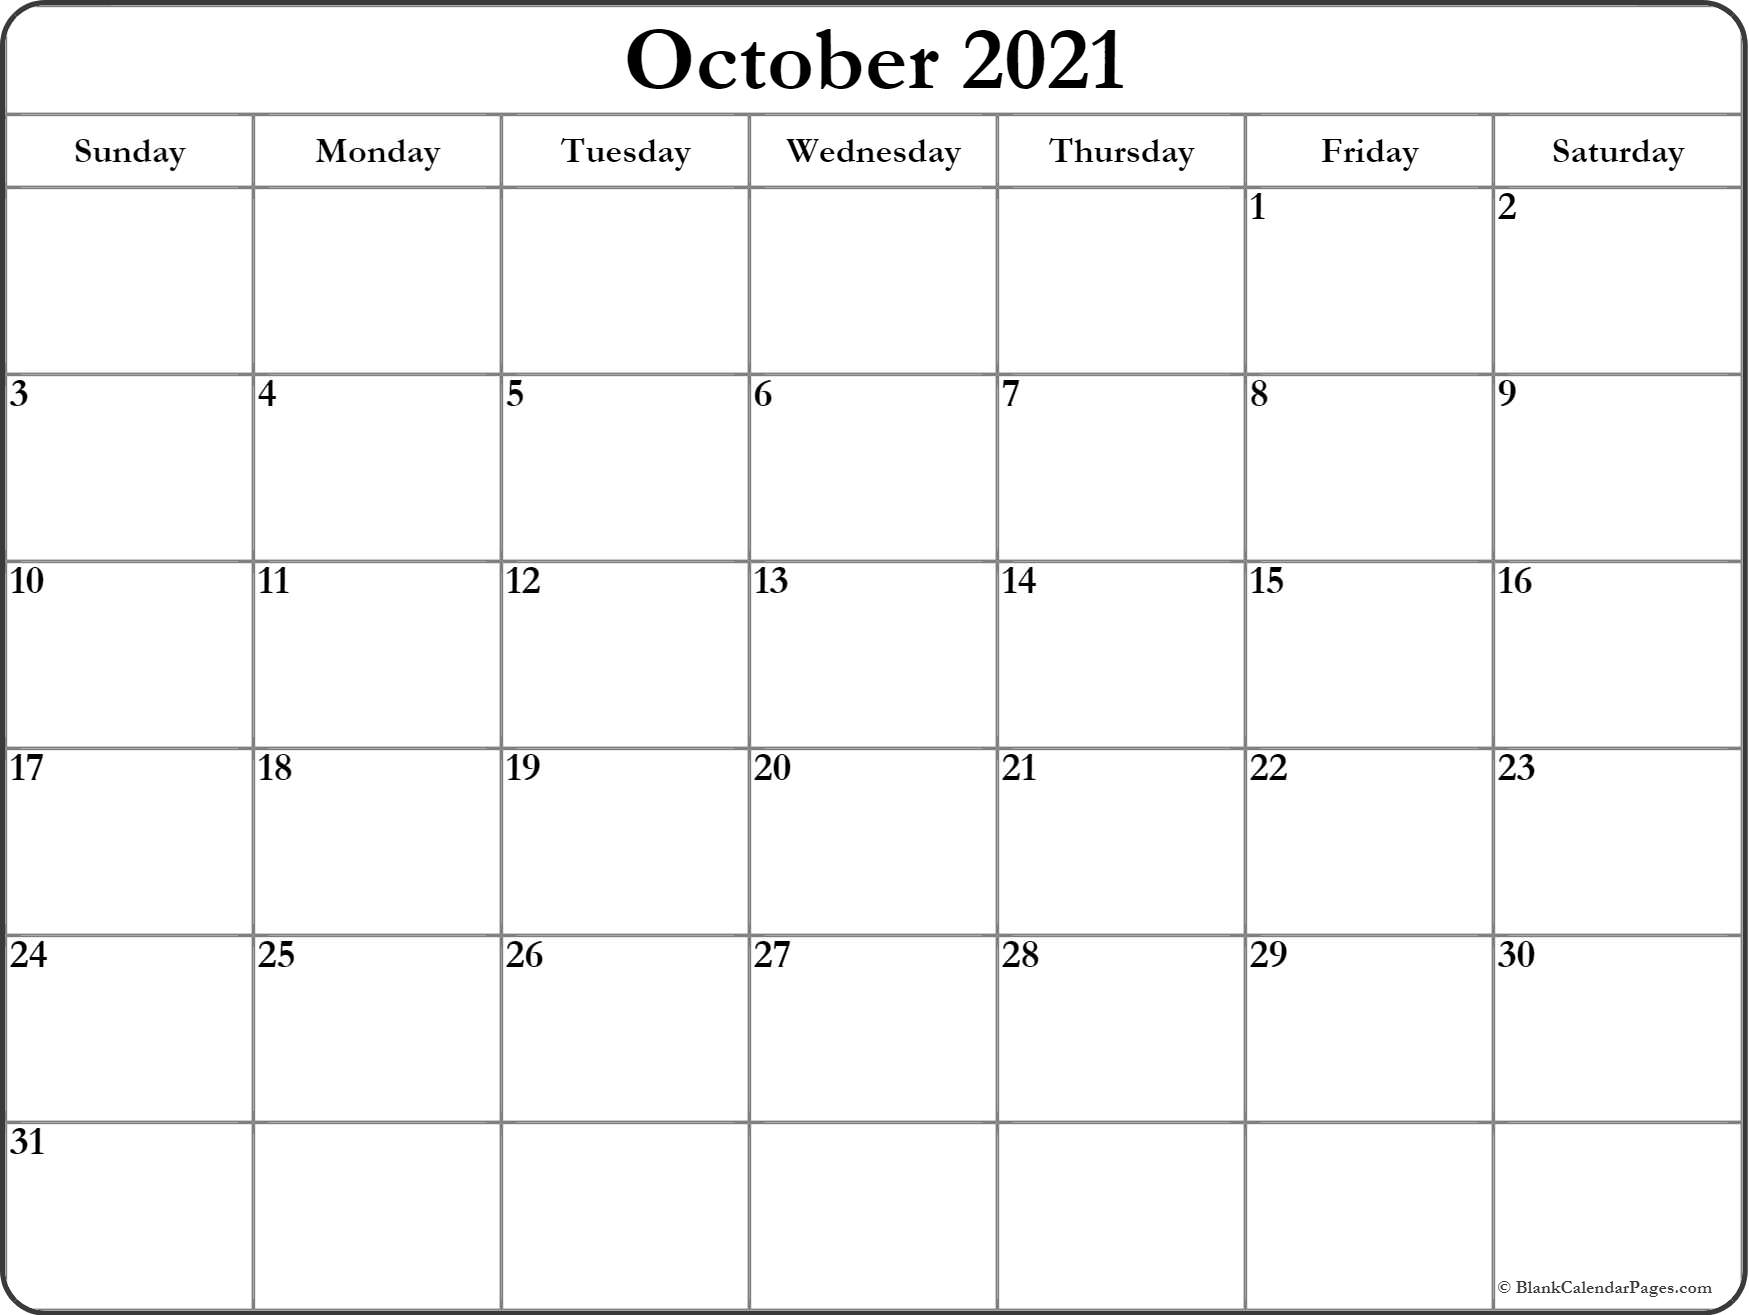 October 2018 free printable blank calendar collection. BlankCalendarPages.com Featured October 2018 printable blank calendar #1